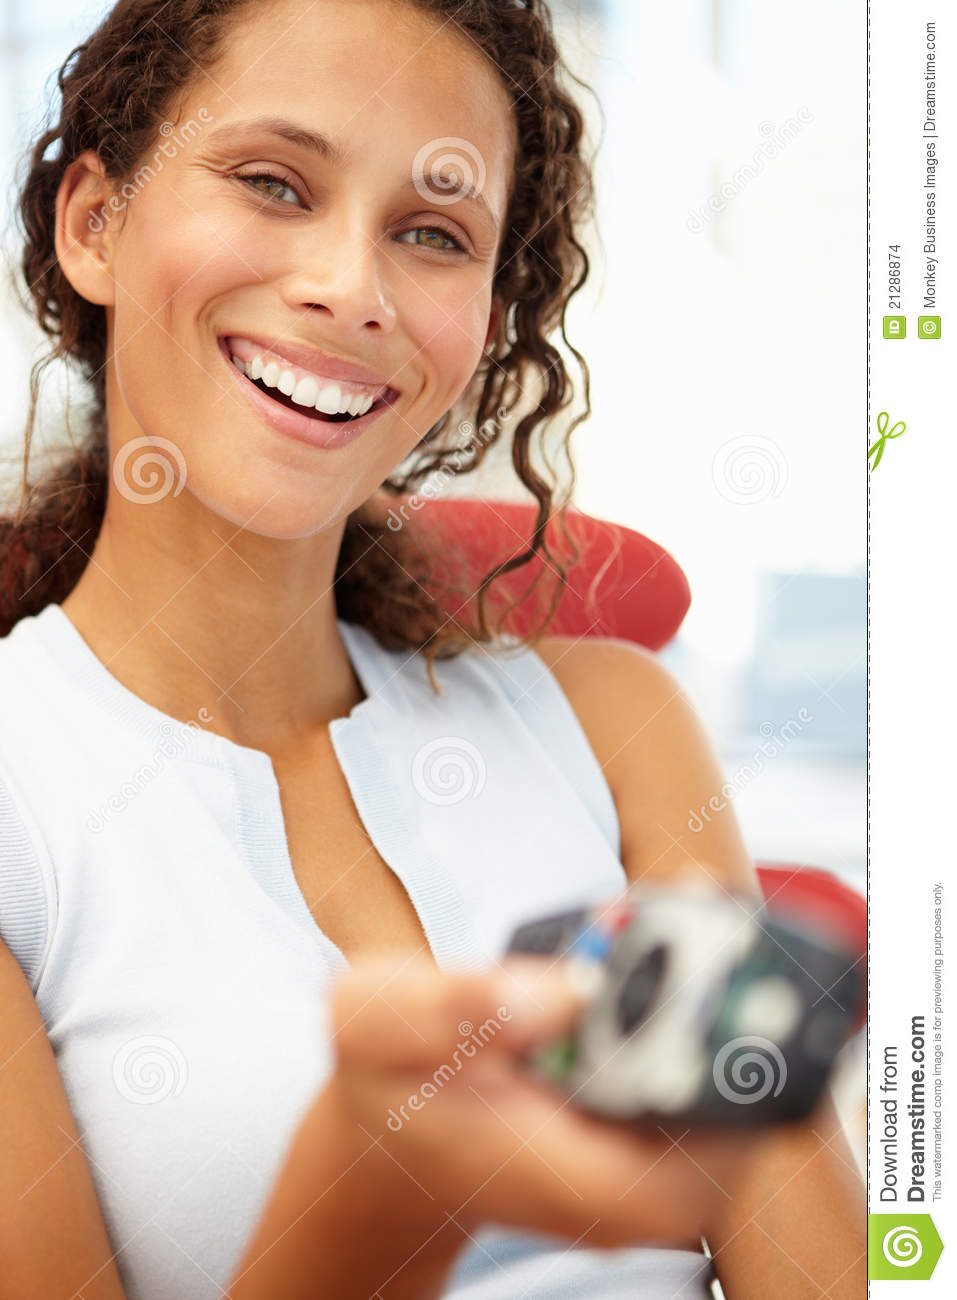 Portrait of young woman with remote control